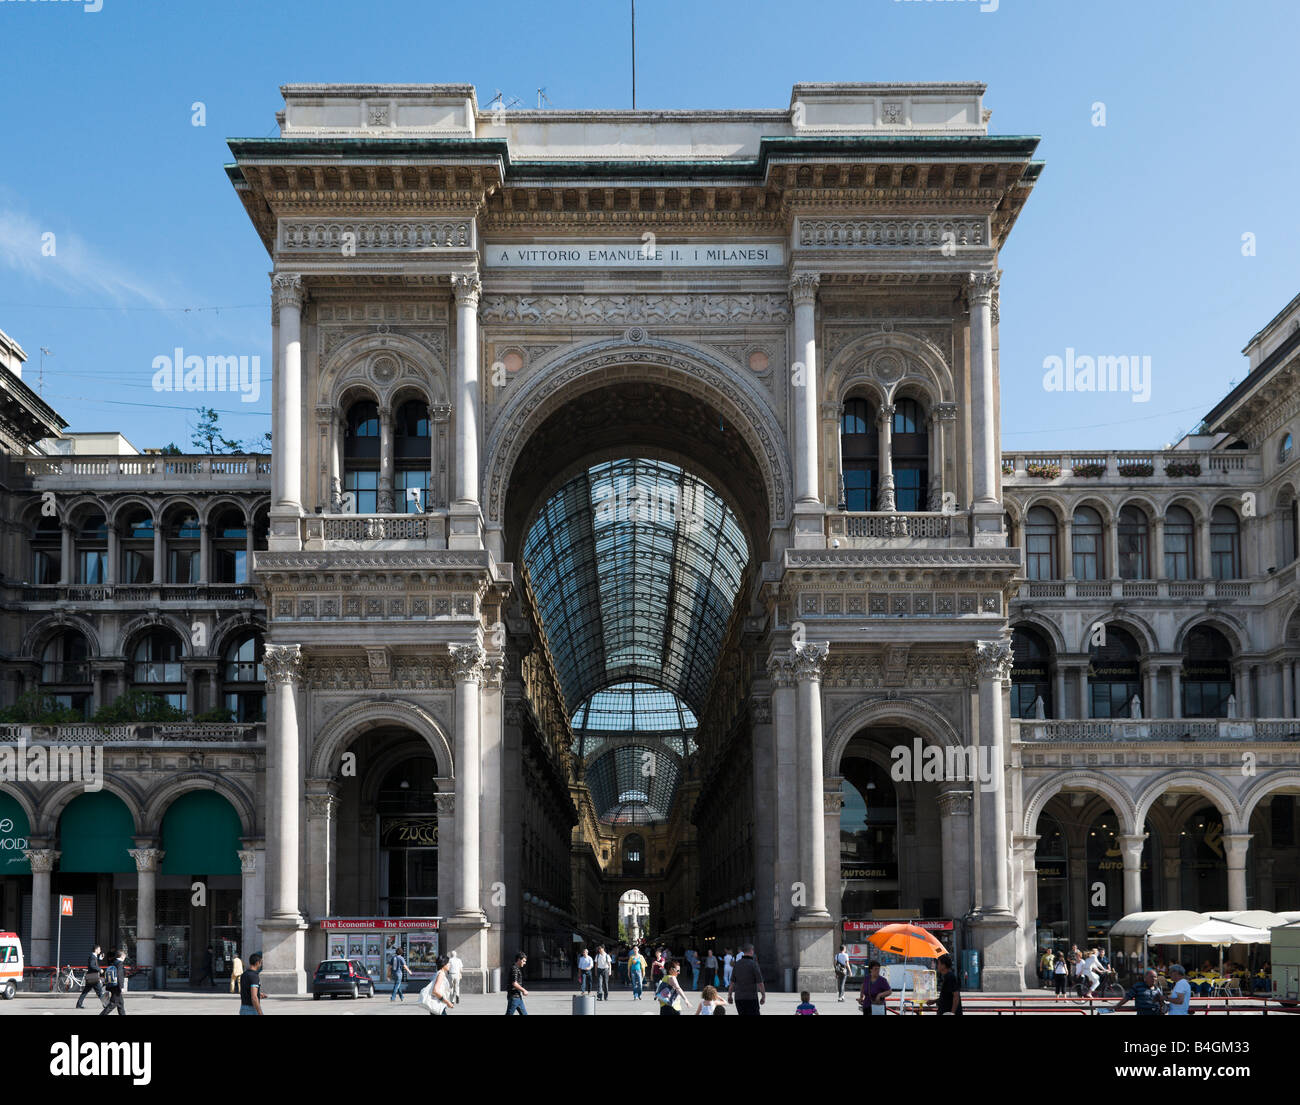 Entrance to Galleria Vittorio Emmanuele II designed by Guiseppe Mengoni, Piazza del Duomo, Milan, Lombardy, Italy - Stock Image